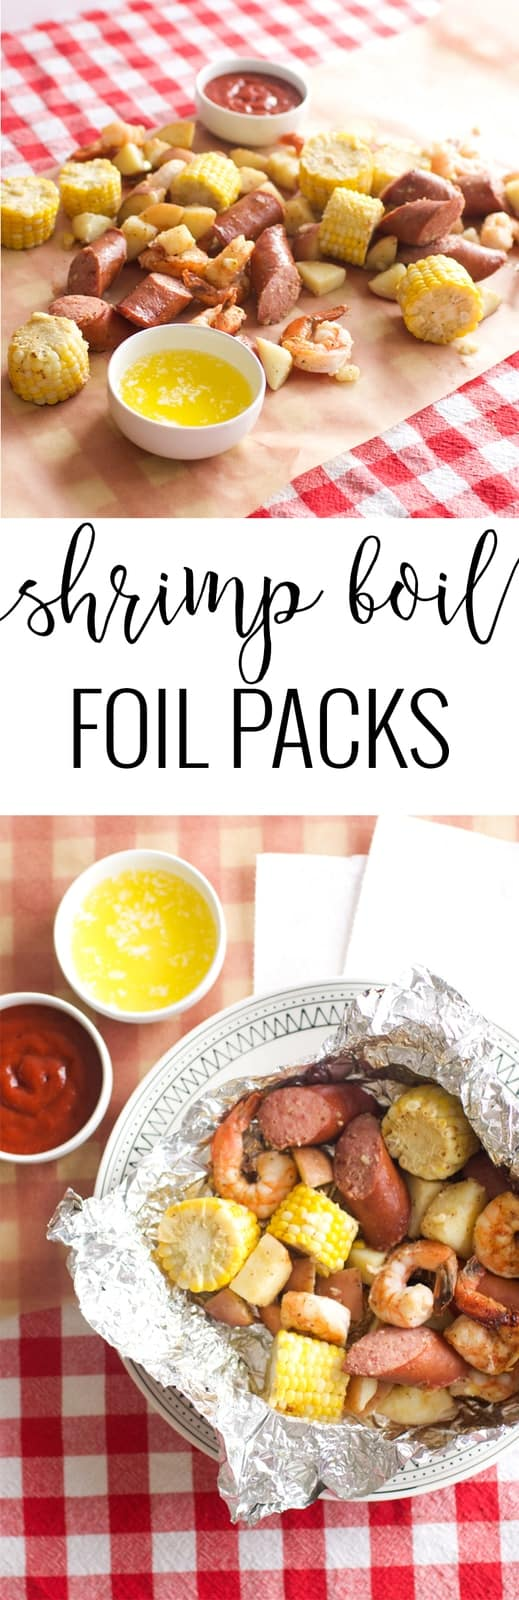 Shrimp Boil Foil Packs | foil packet meals | shrimp boil dinner ideas | easy shrimp boil recipes | foil dinner recipes | summer dinner recipes | homemade shrimp recipes | homemade summer recipe ideas | shrimp boil recipe ideas || Oh So Delicioso